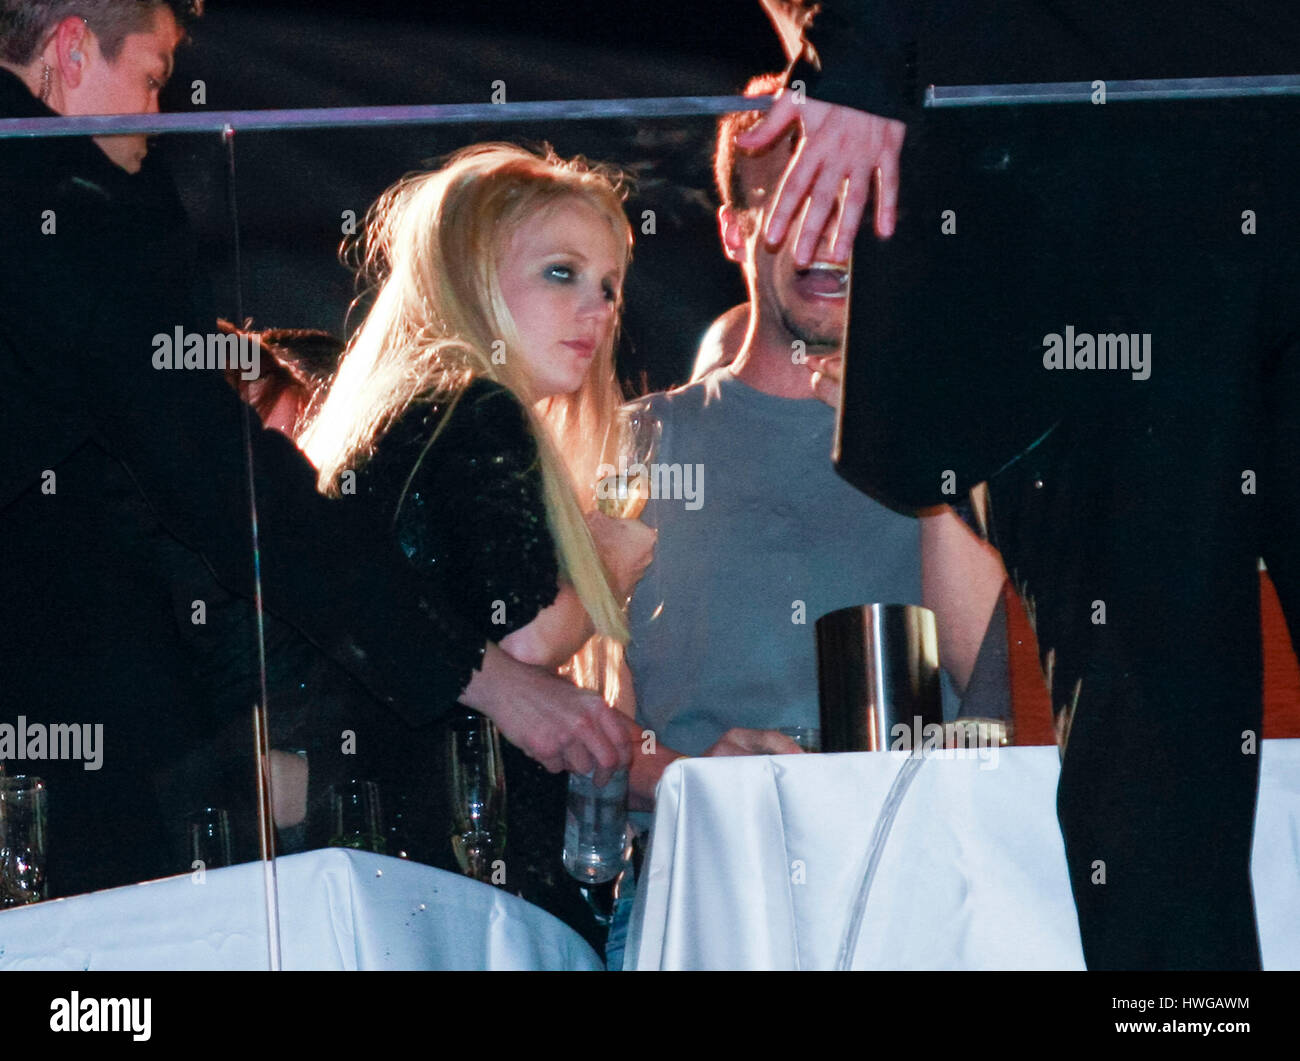 exclusive-photo-of-britney-spears-drinki